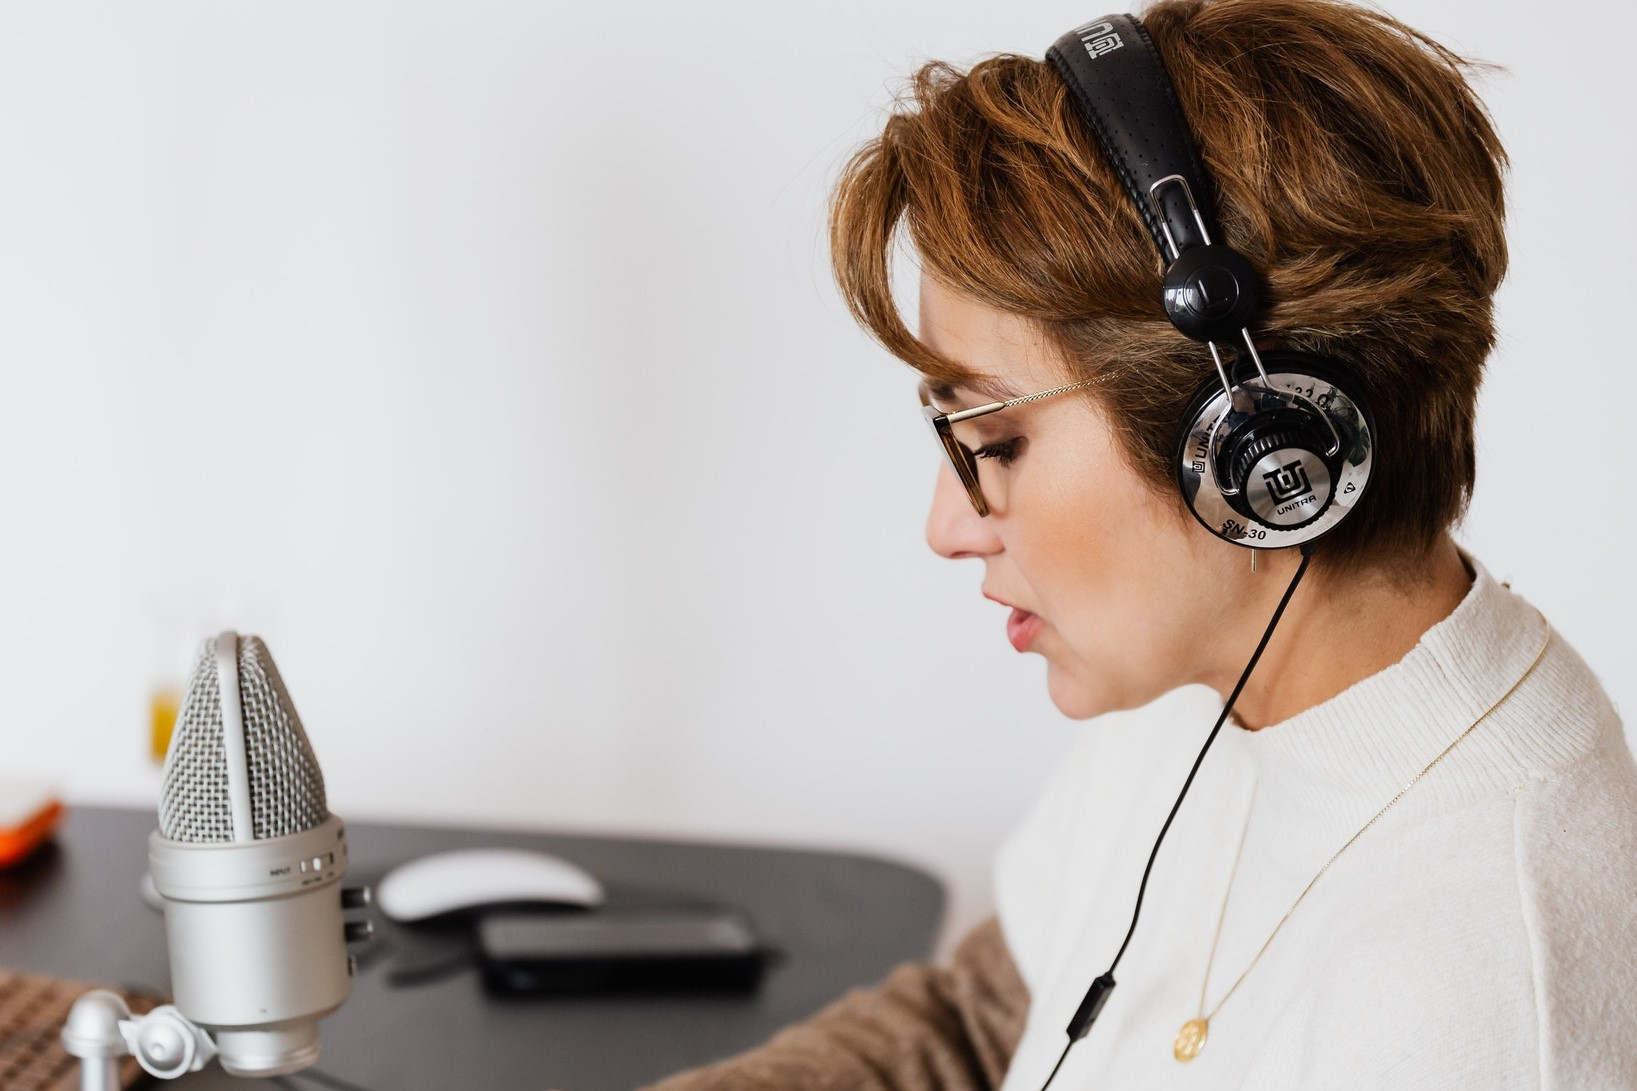 a woman using headphones, singing or speaking into a microphone